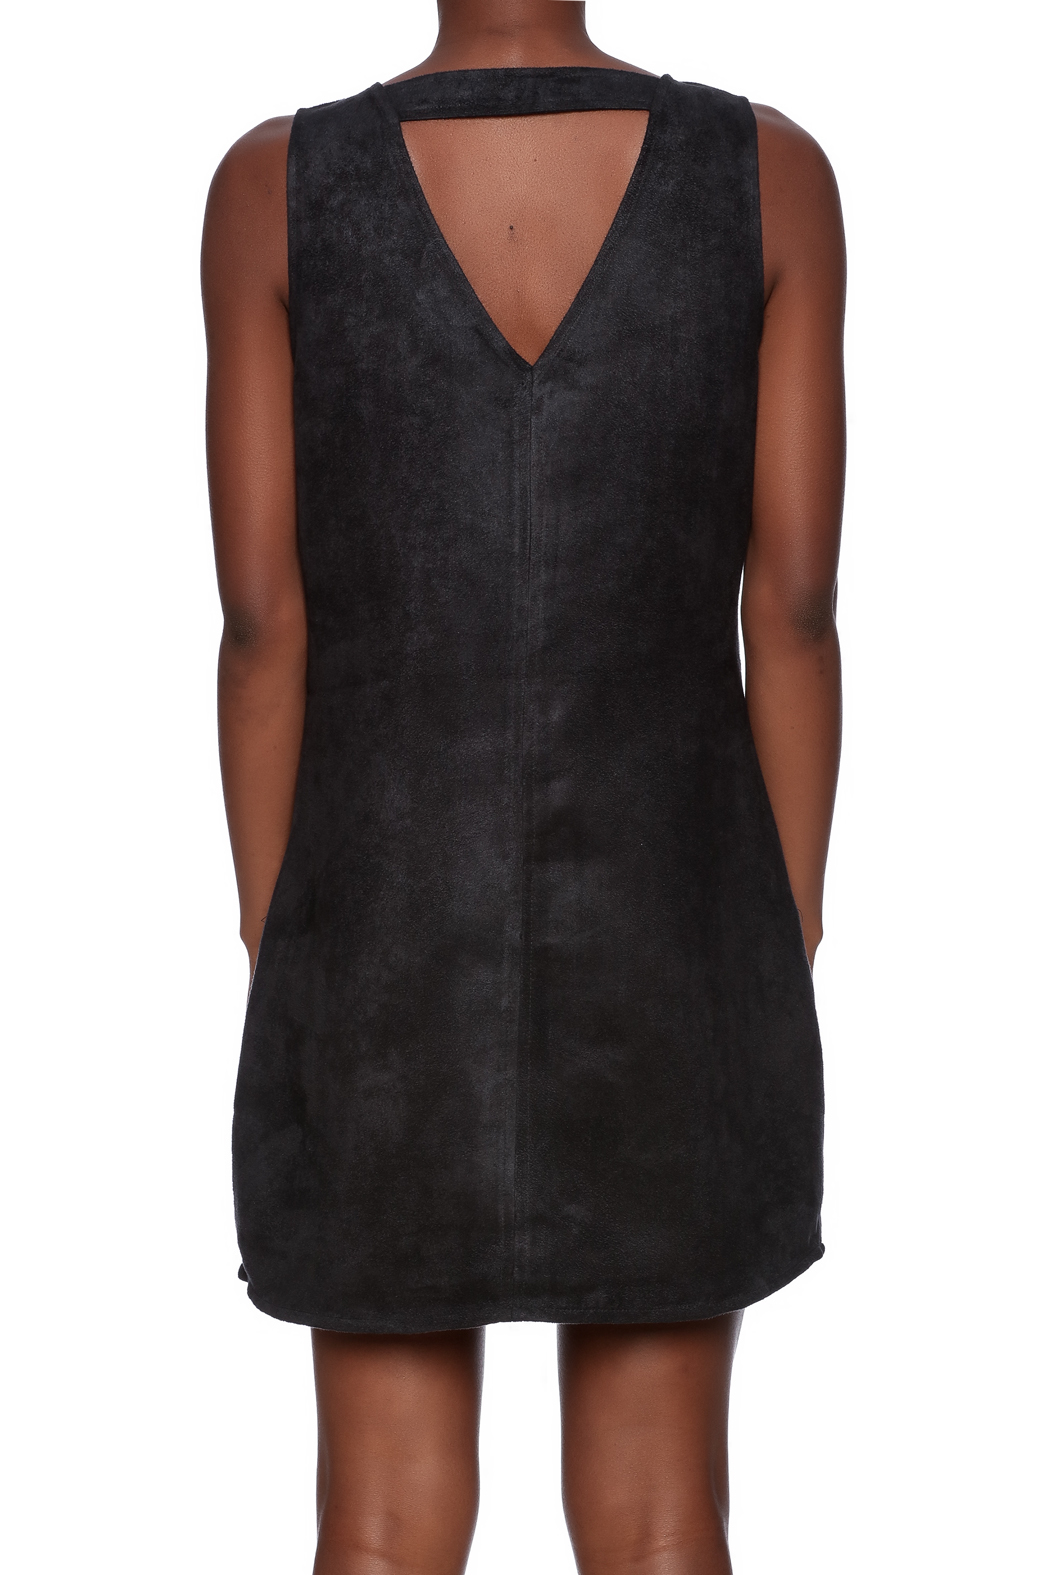 Jack by BB Dakota Bane Faux Suede Dress - Back Cropped Image